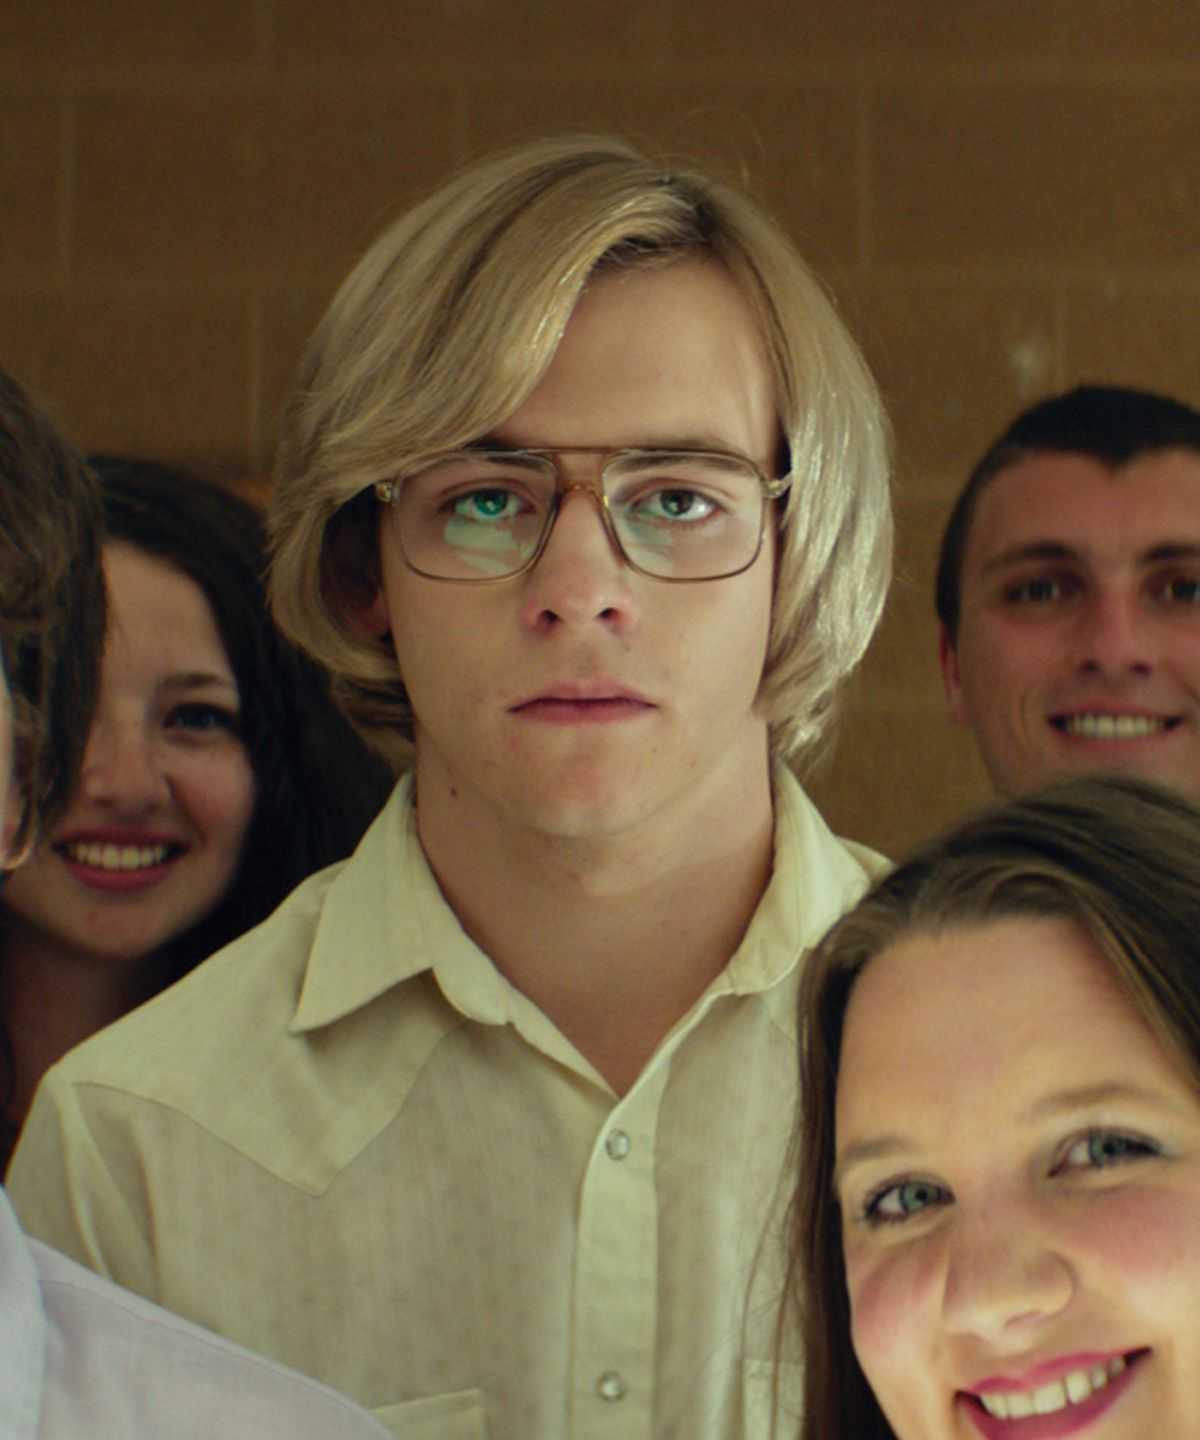 My Friend Dahmer: A Review